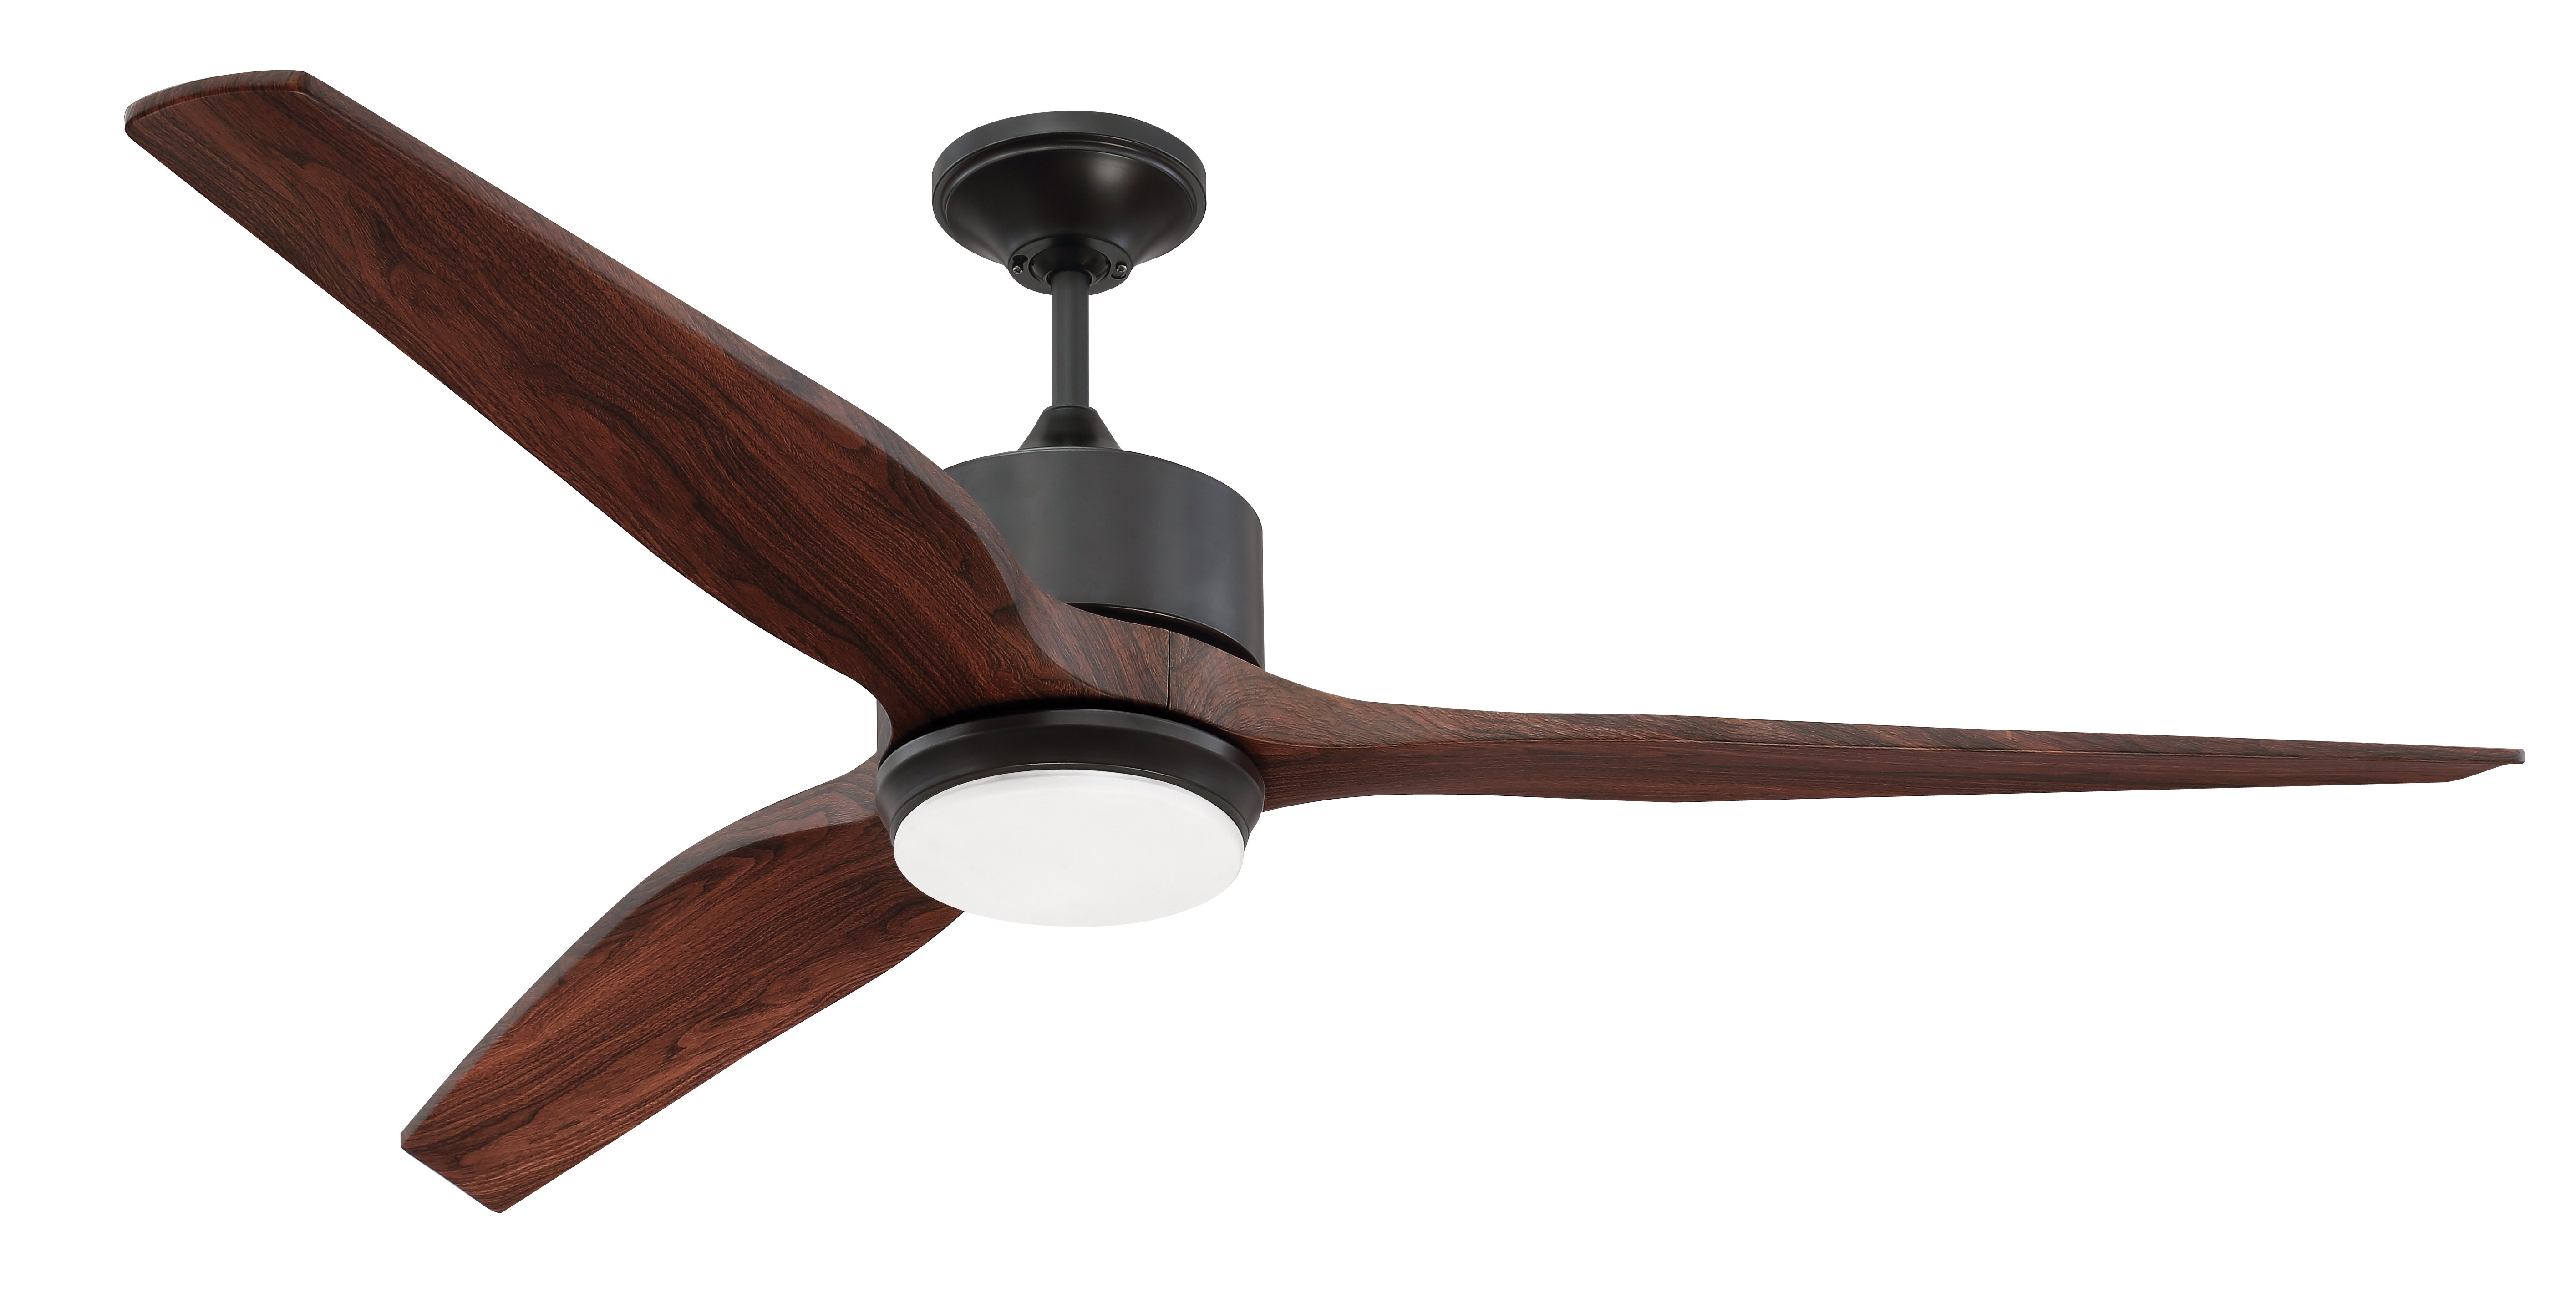 "Most Current Troy 3 Blade Led Ceiling Fans Intended For 60"" Paige 3 Blade Led Ceiling Fan With Remote, Light Kit Included (View 3 of 20)"